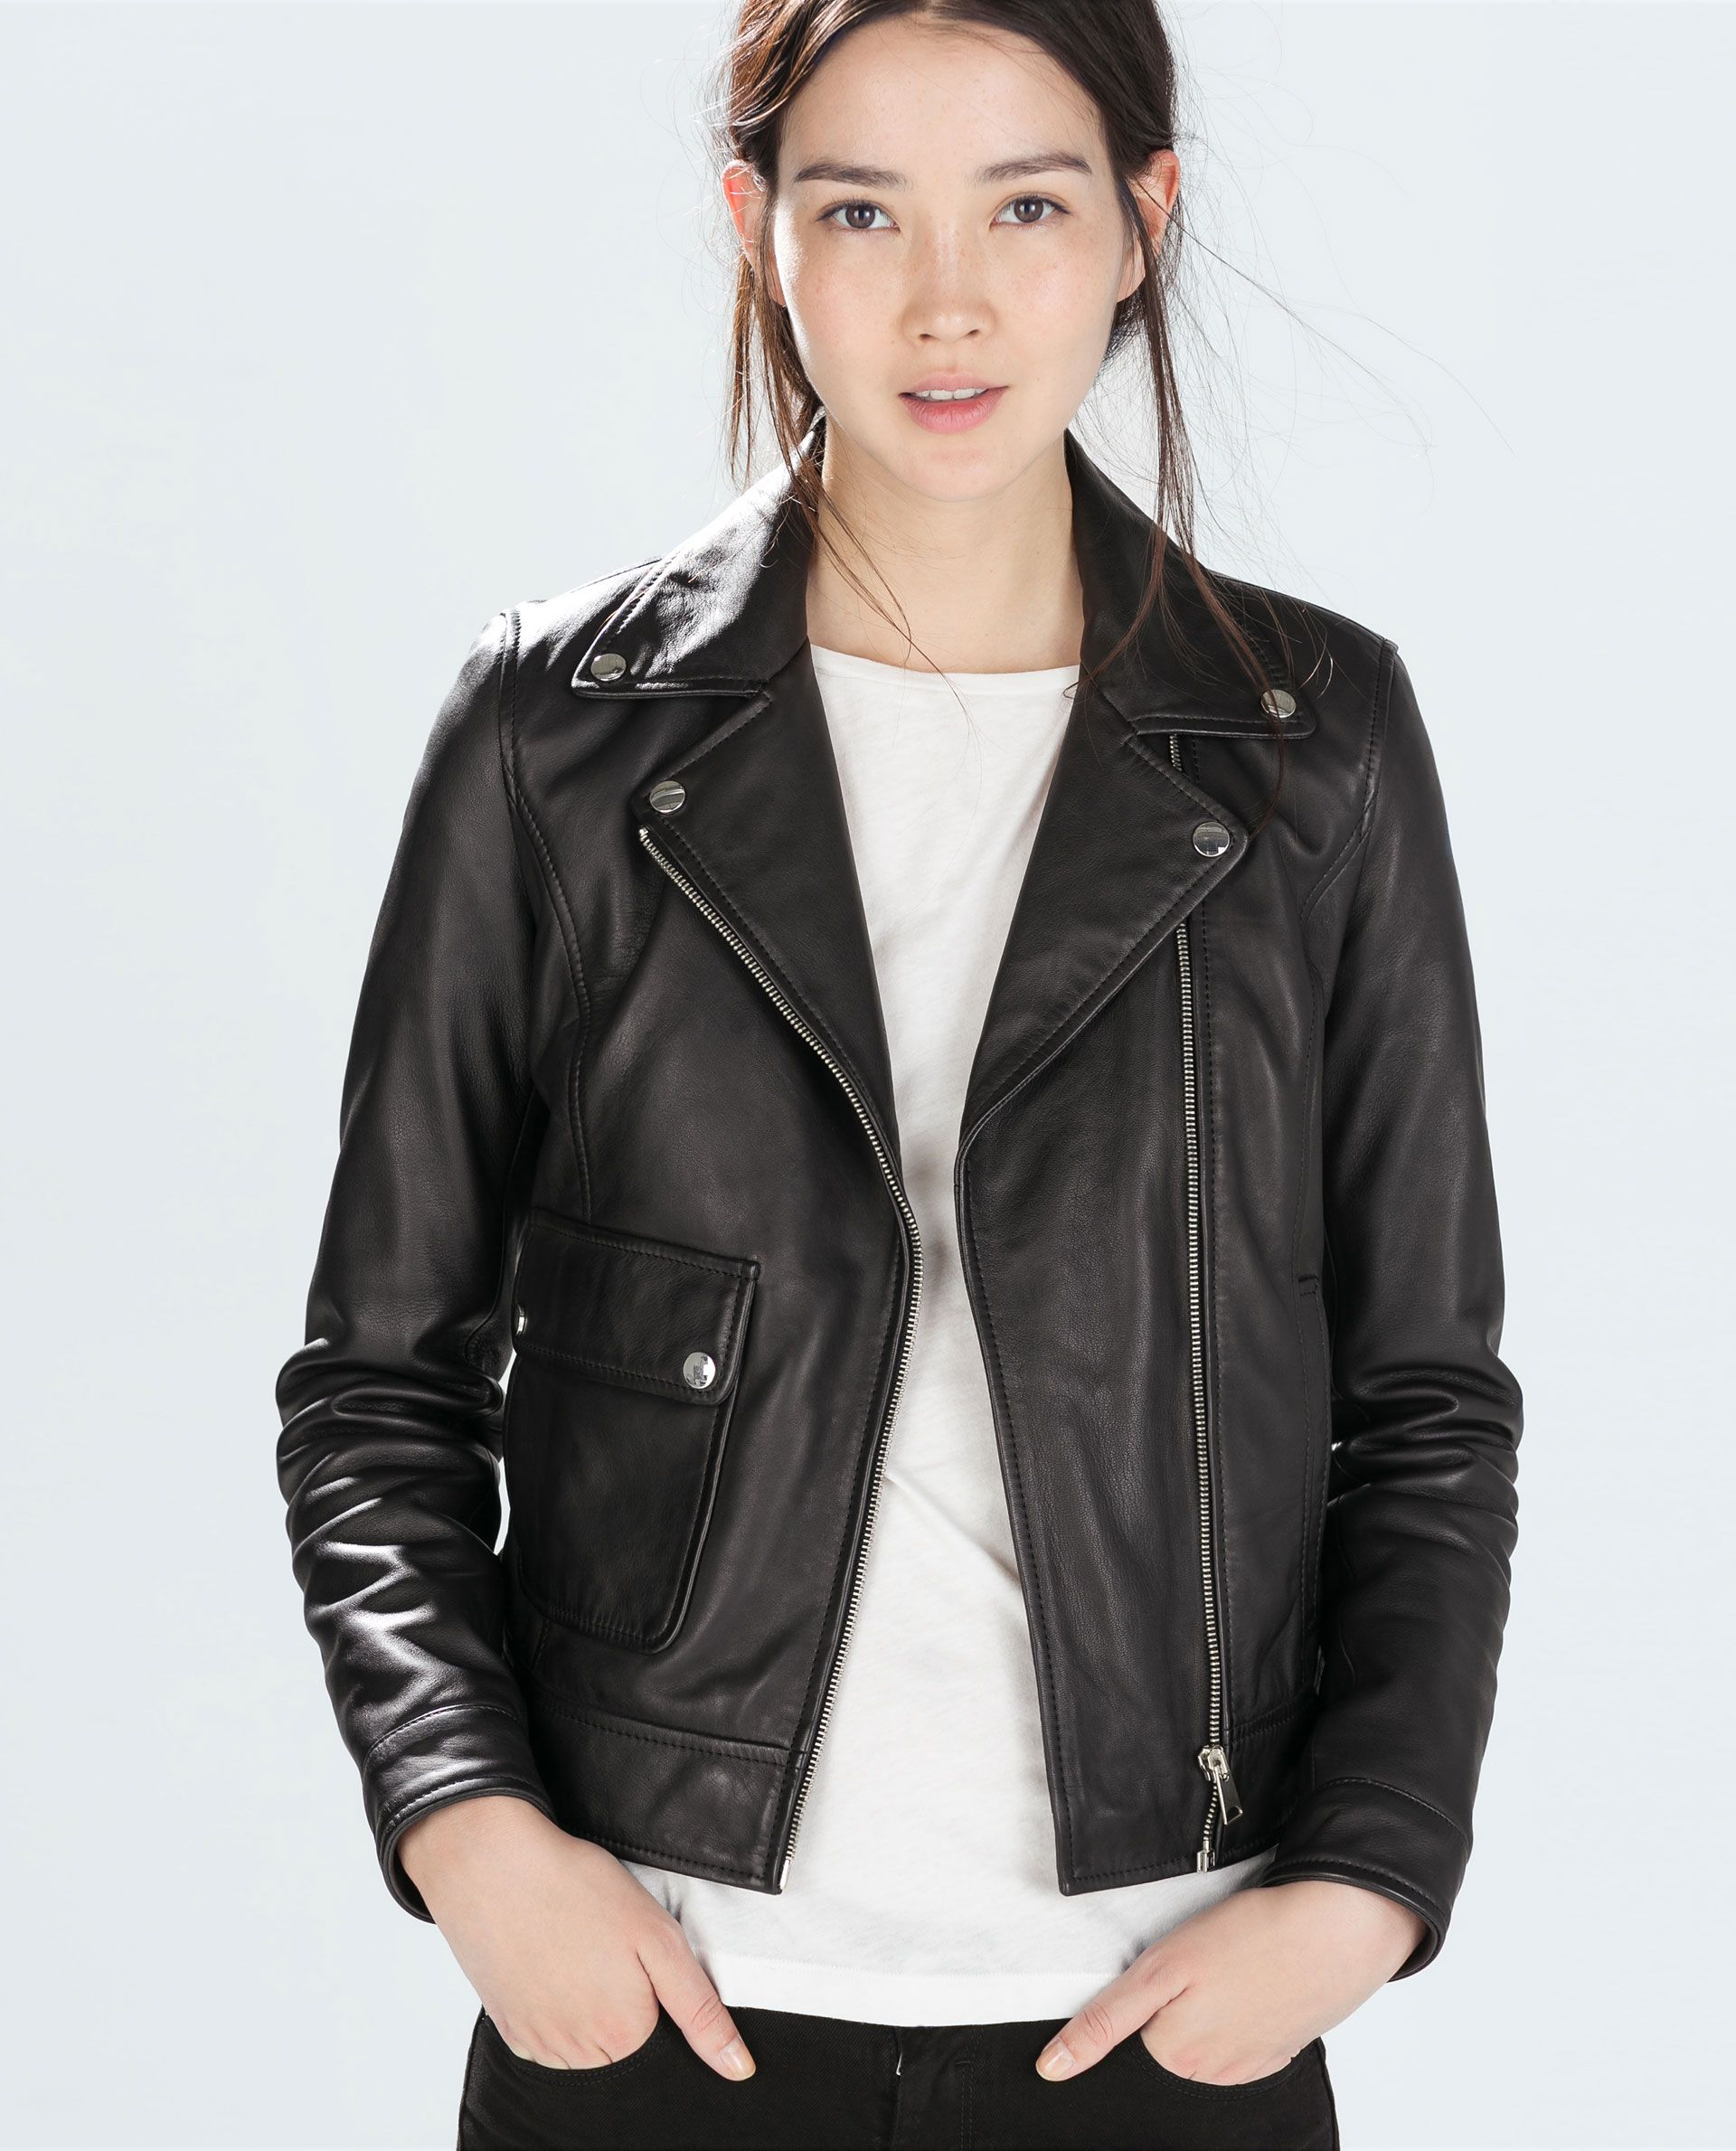 Zara Leather Biker Jacket Zara leather, Clothes for